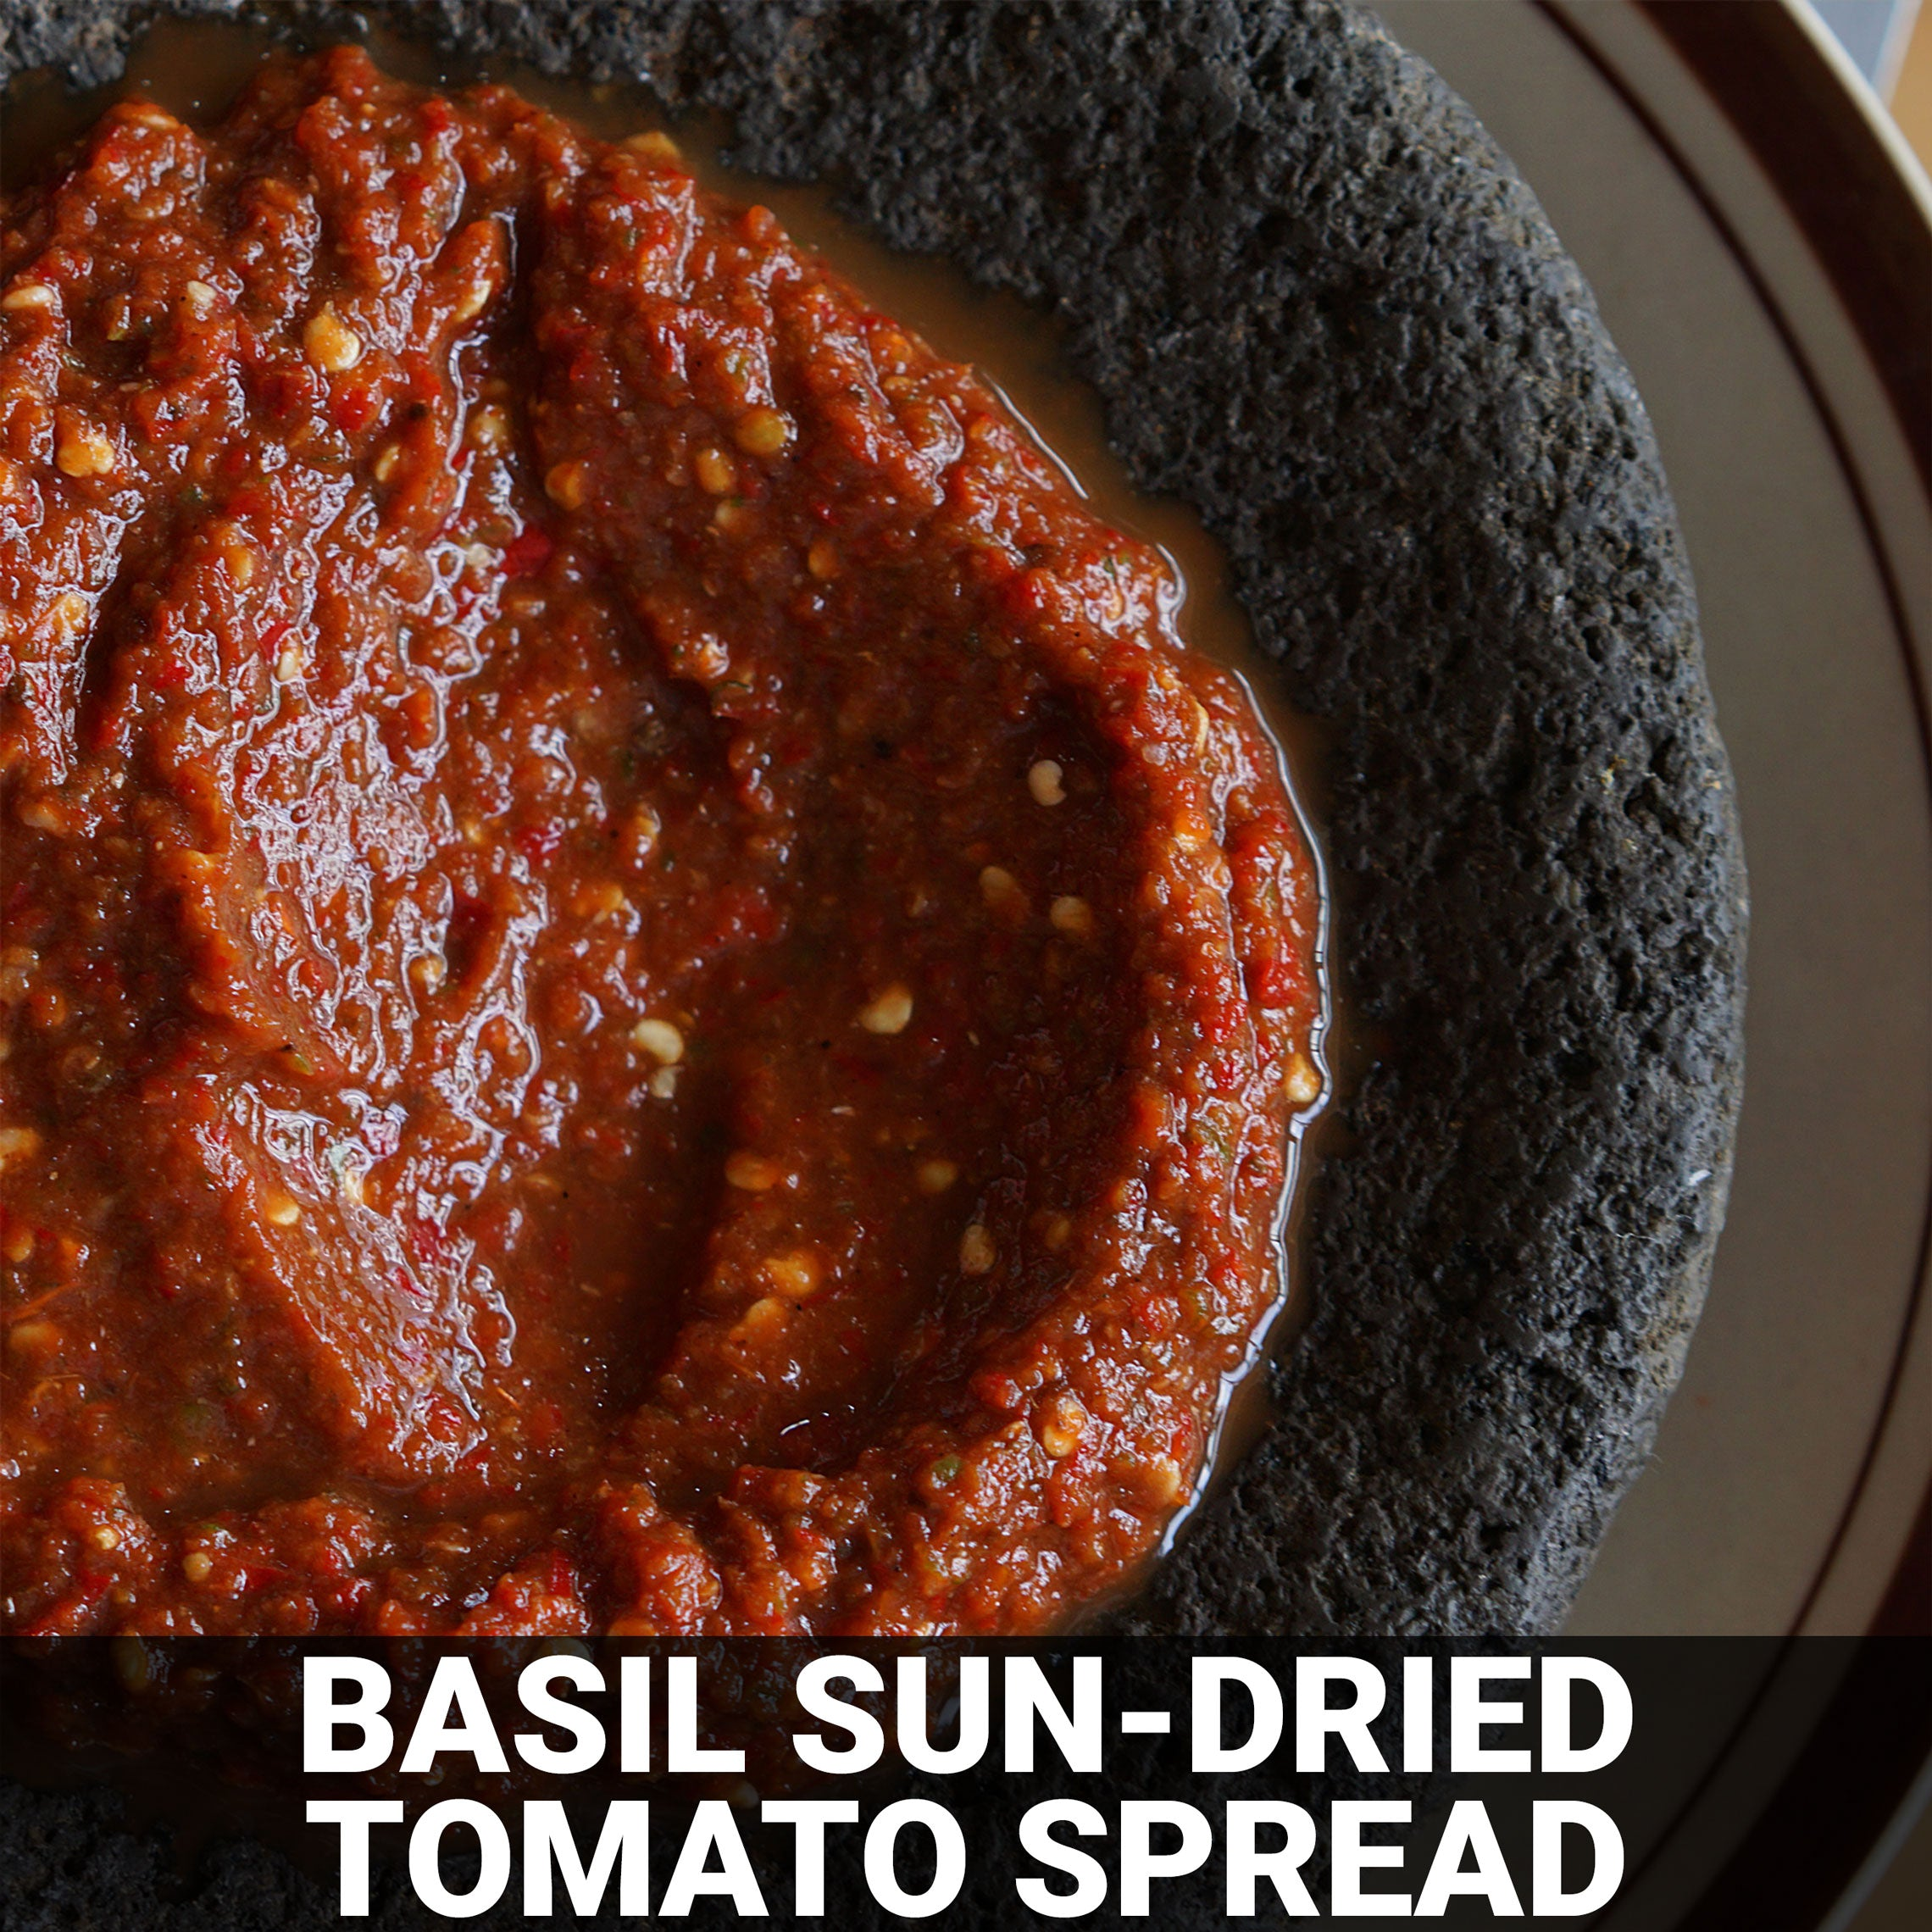 Basil Sun-Dried Tomato Spread Recipe - Foods Alive